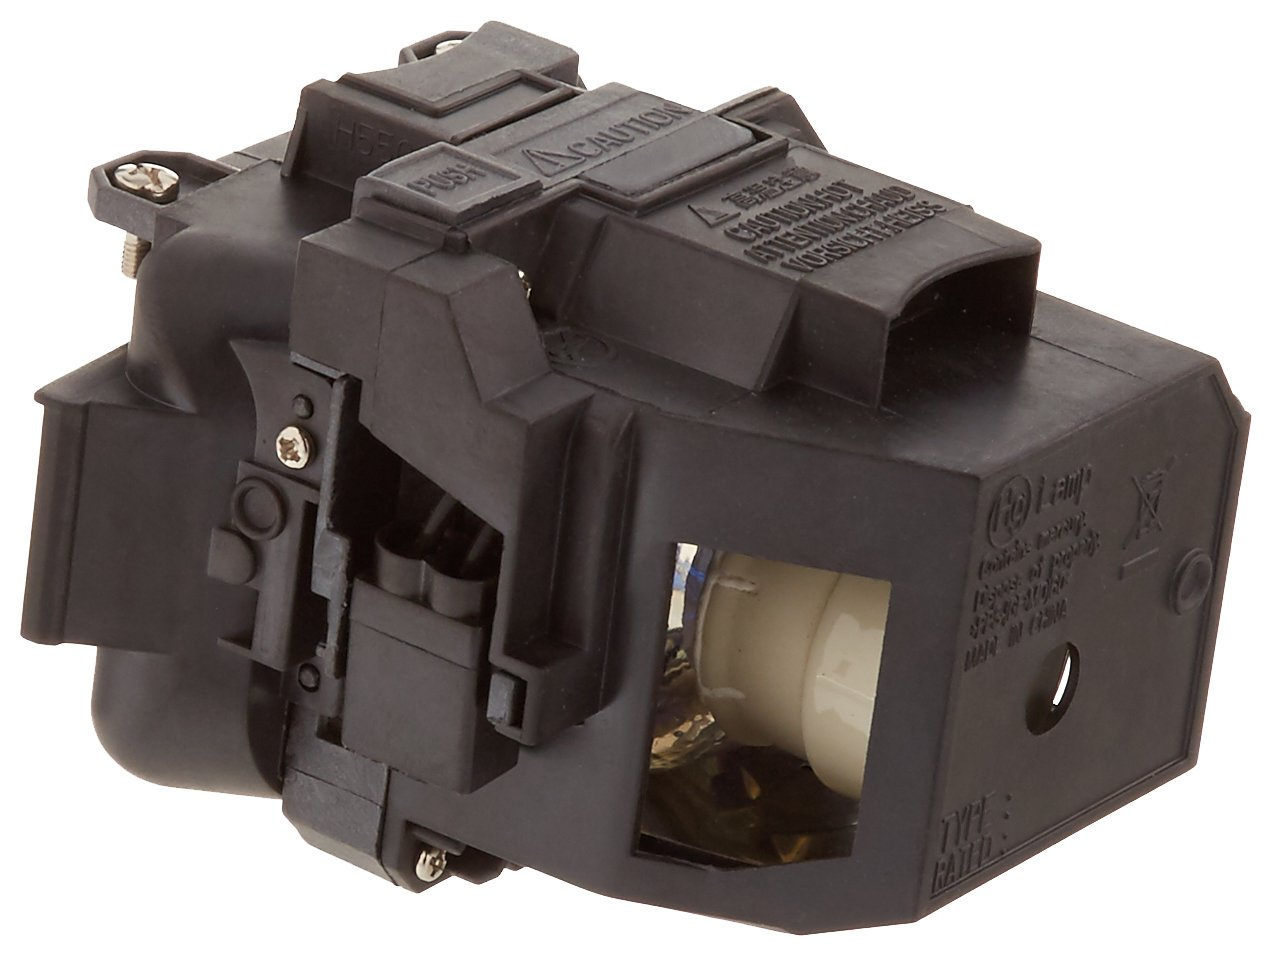 P Premium Power Products ELPLP78-ER Compatible FP Lamp Projector Accessory by P Premium Power Products (Image #2)